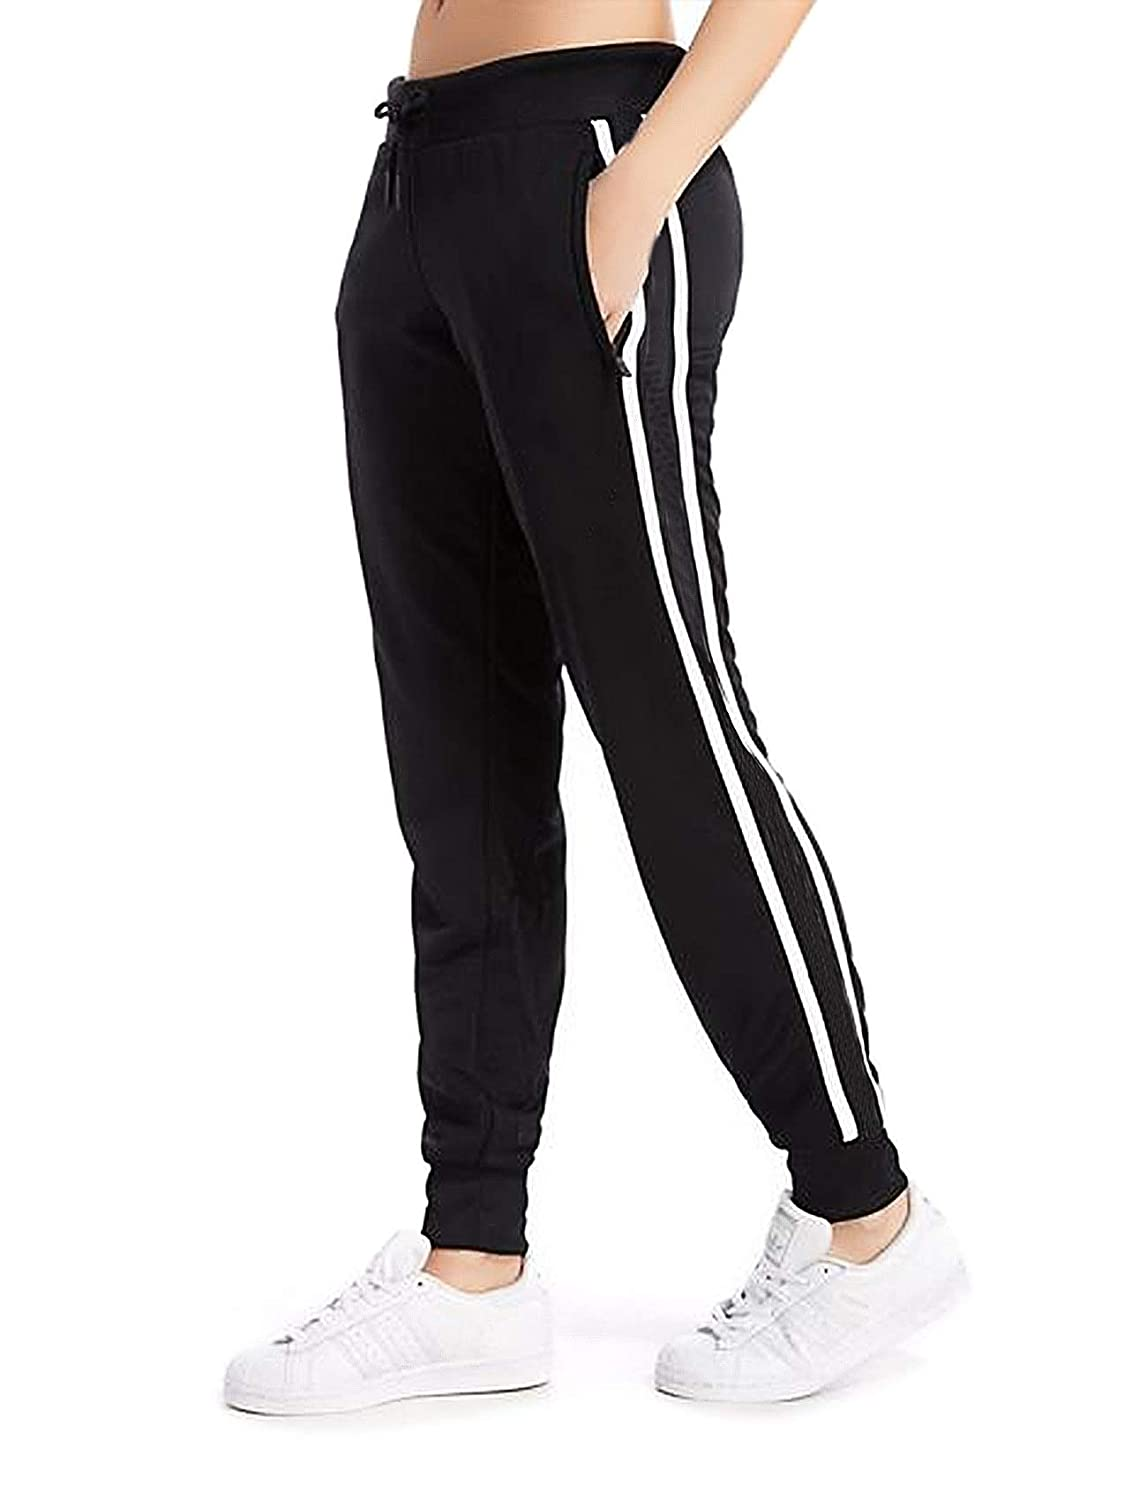 aa7e32b142 Women's Cuffed Jogger Pants Drawstring Side Stripe Track Active Workout  Yoga Sweatpants Dual White Striped at Amazon Women's Clothing store: